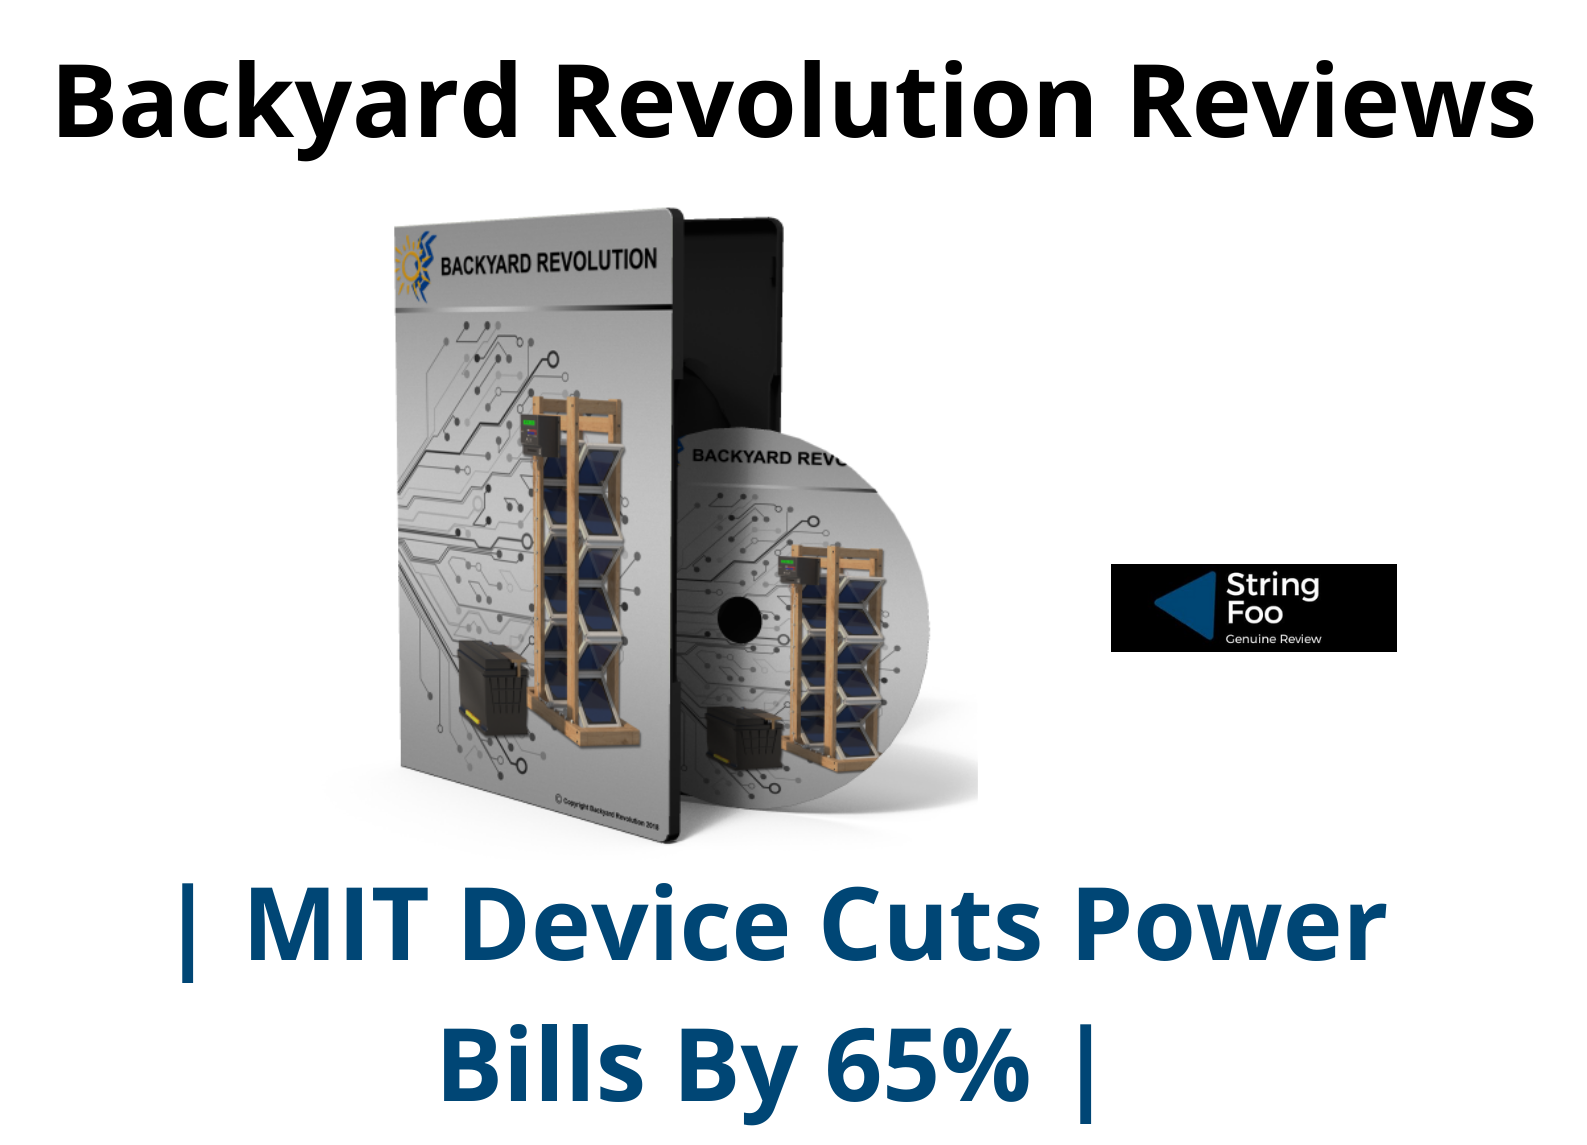 Backyard Revolution Reviews